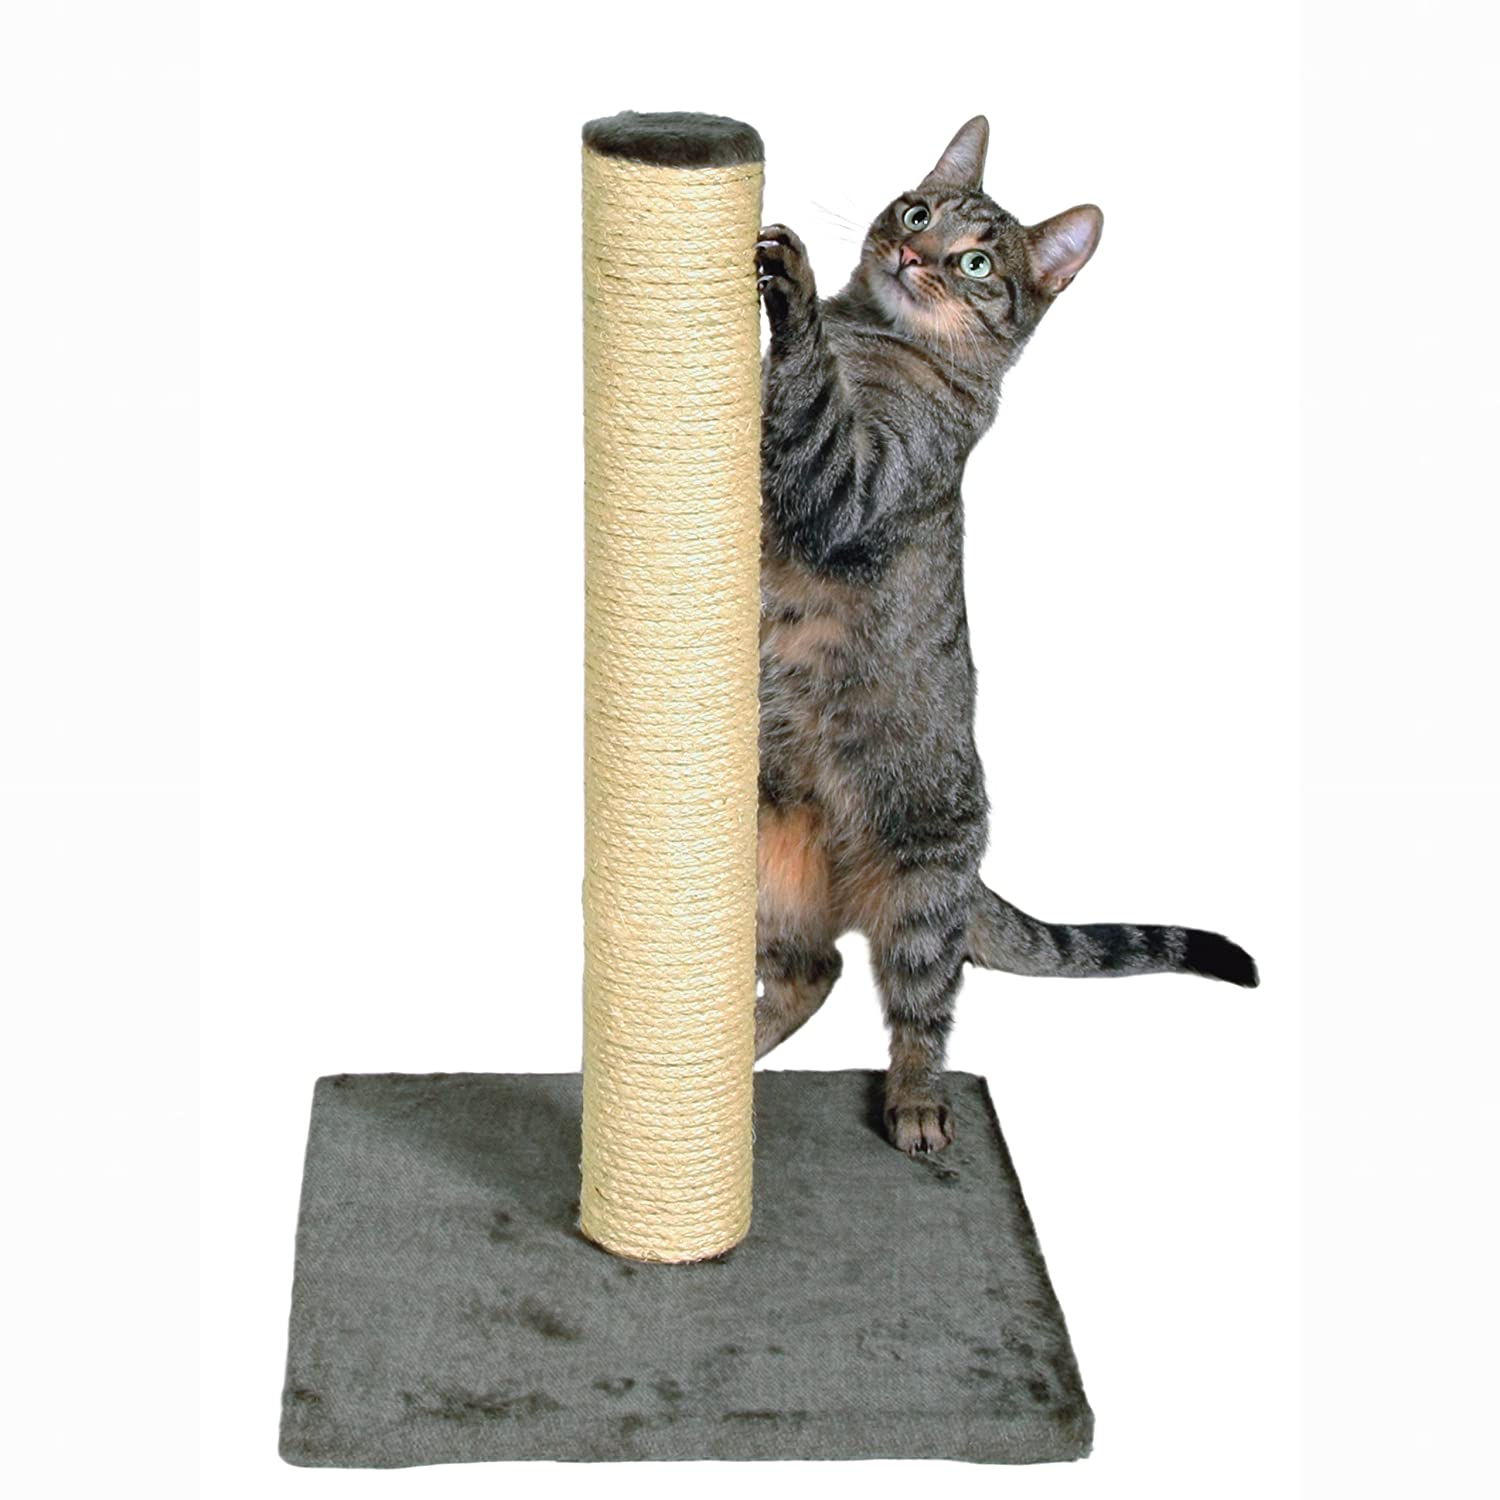 Trixie Parla Scratching Post, 62 cm